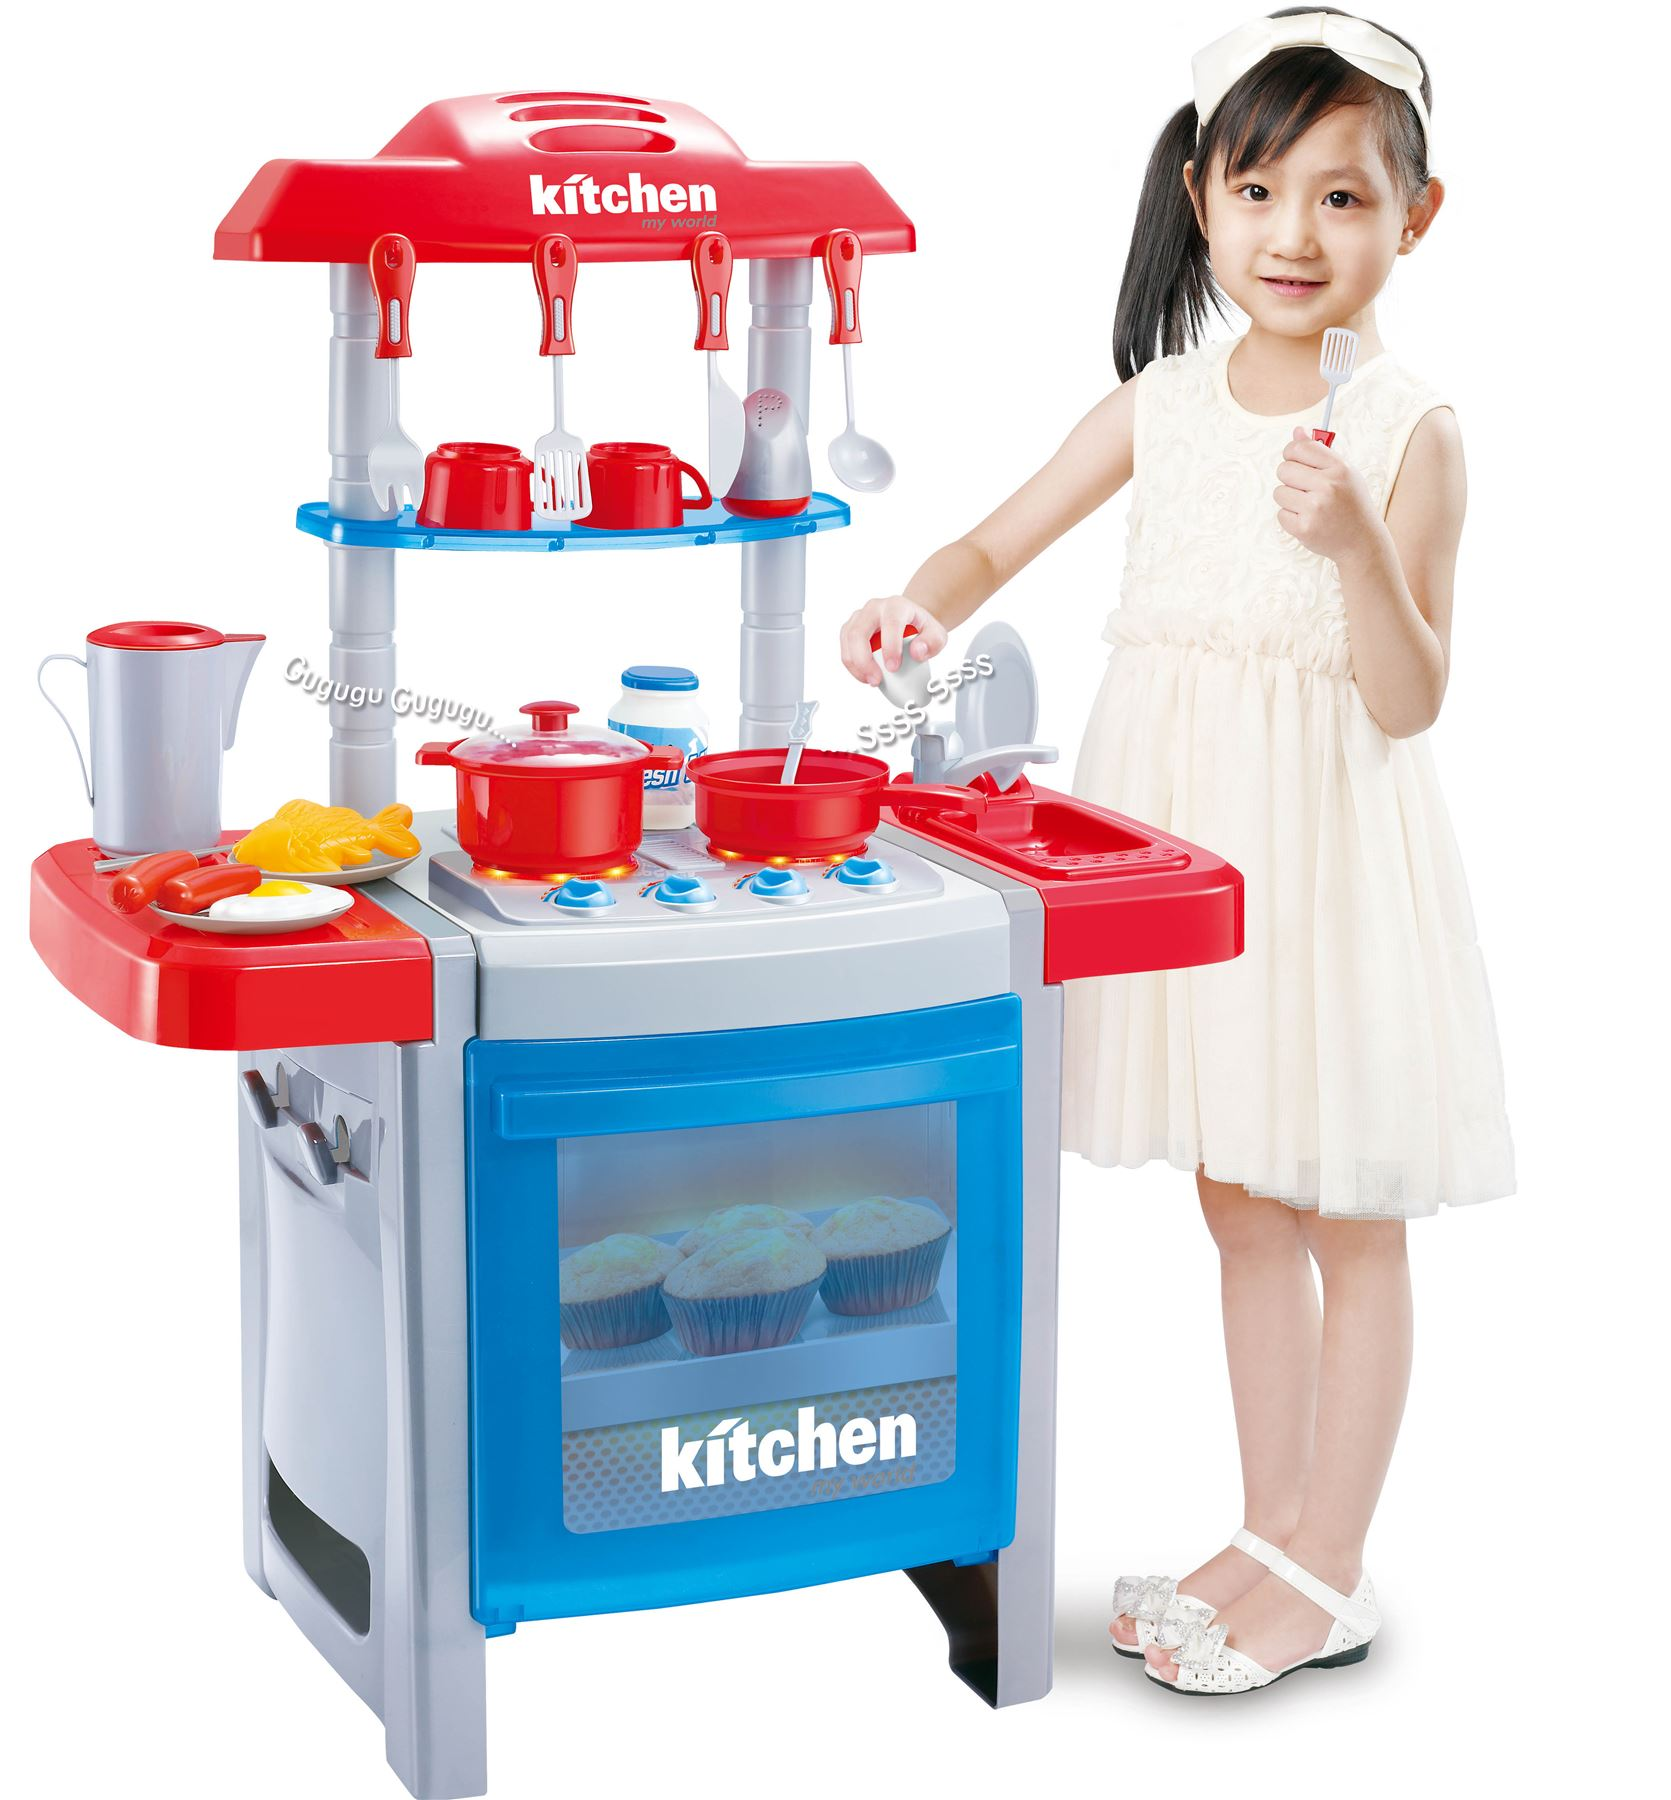 Electronic Kitchen Set: 22 Pieces Childrens Kids Pretend Play Electronic Lights